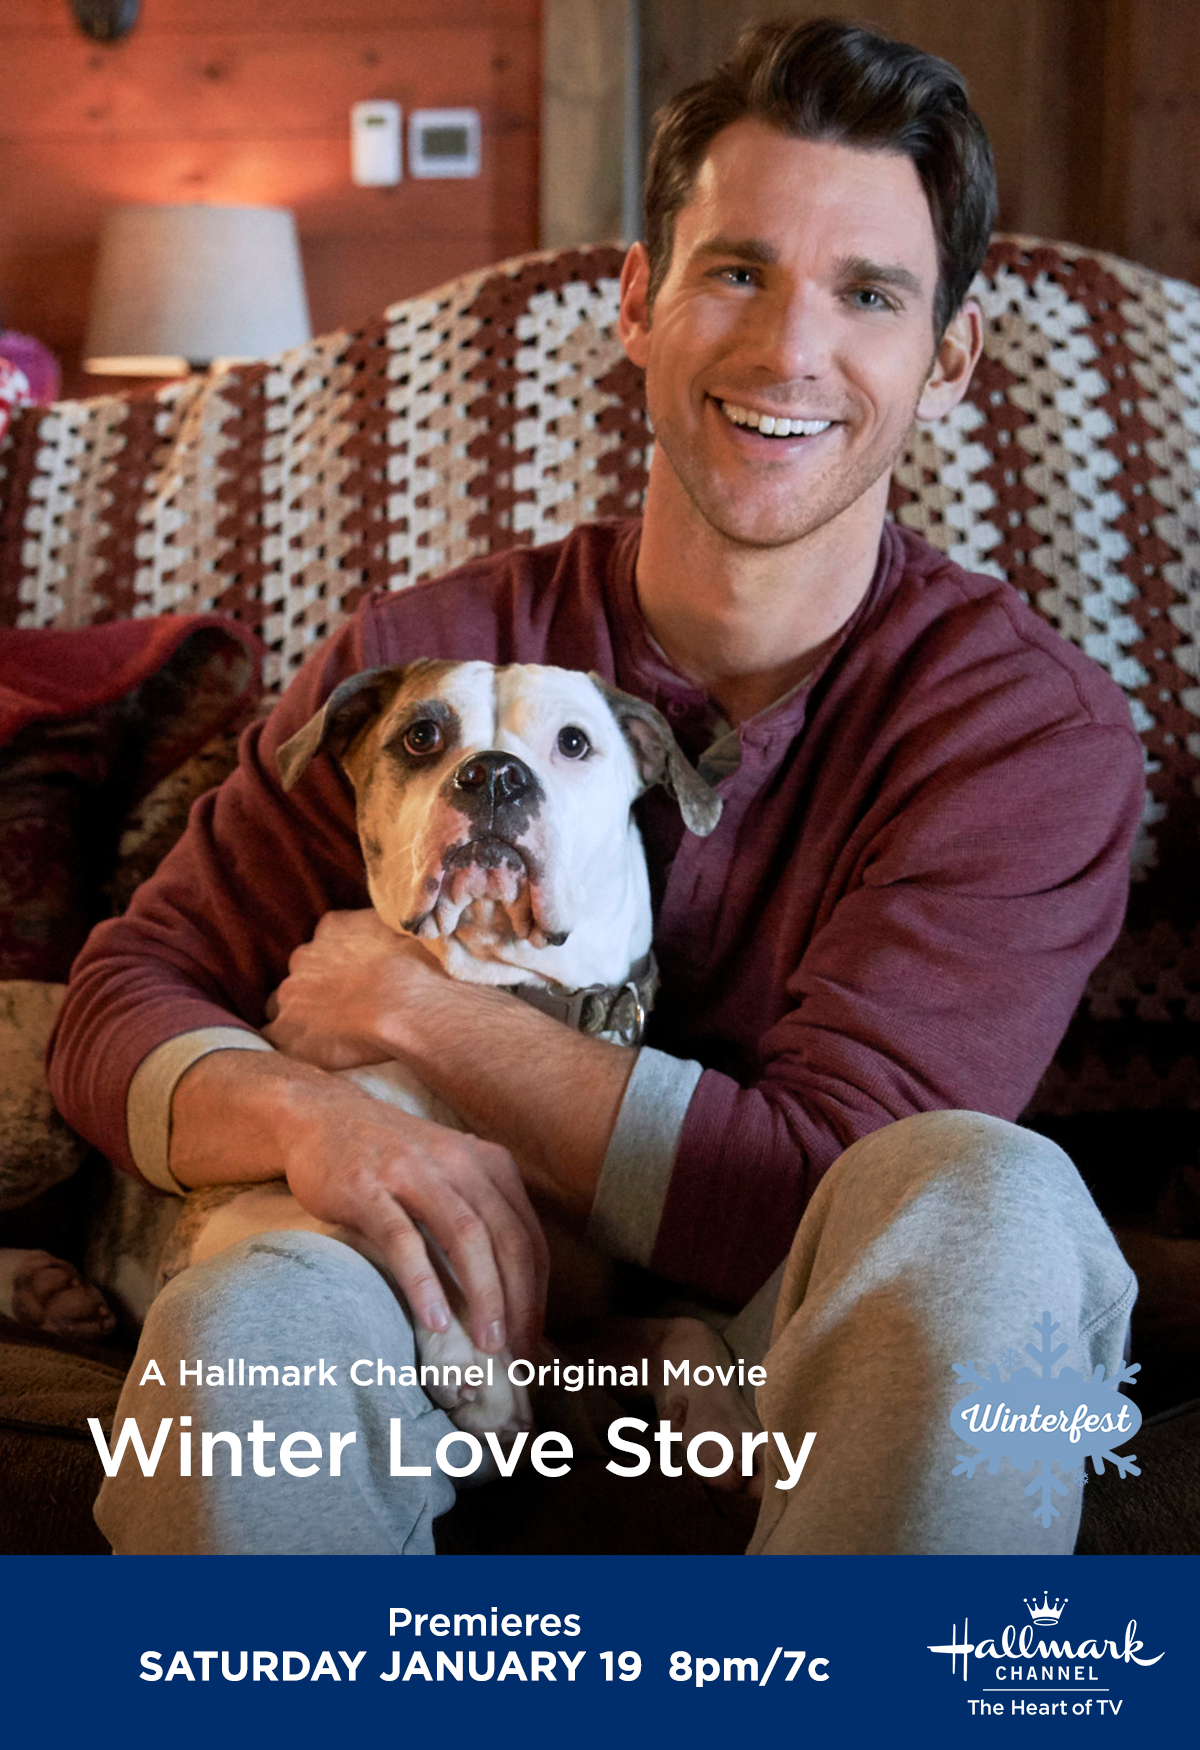 When Calls The Heart S Kevin Mcgarry Warms The Screen In Winter Love Story On January 19 At 8pm 7c On Hallmark Channel Hallmark Tv Hallmark Christmas Movies